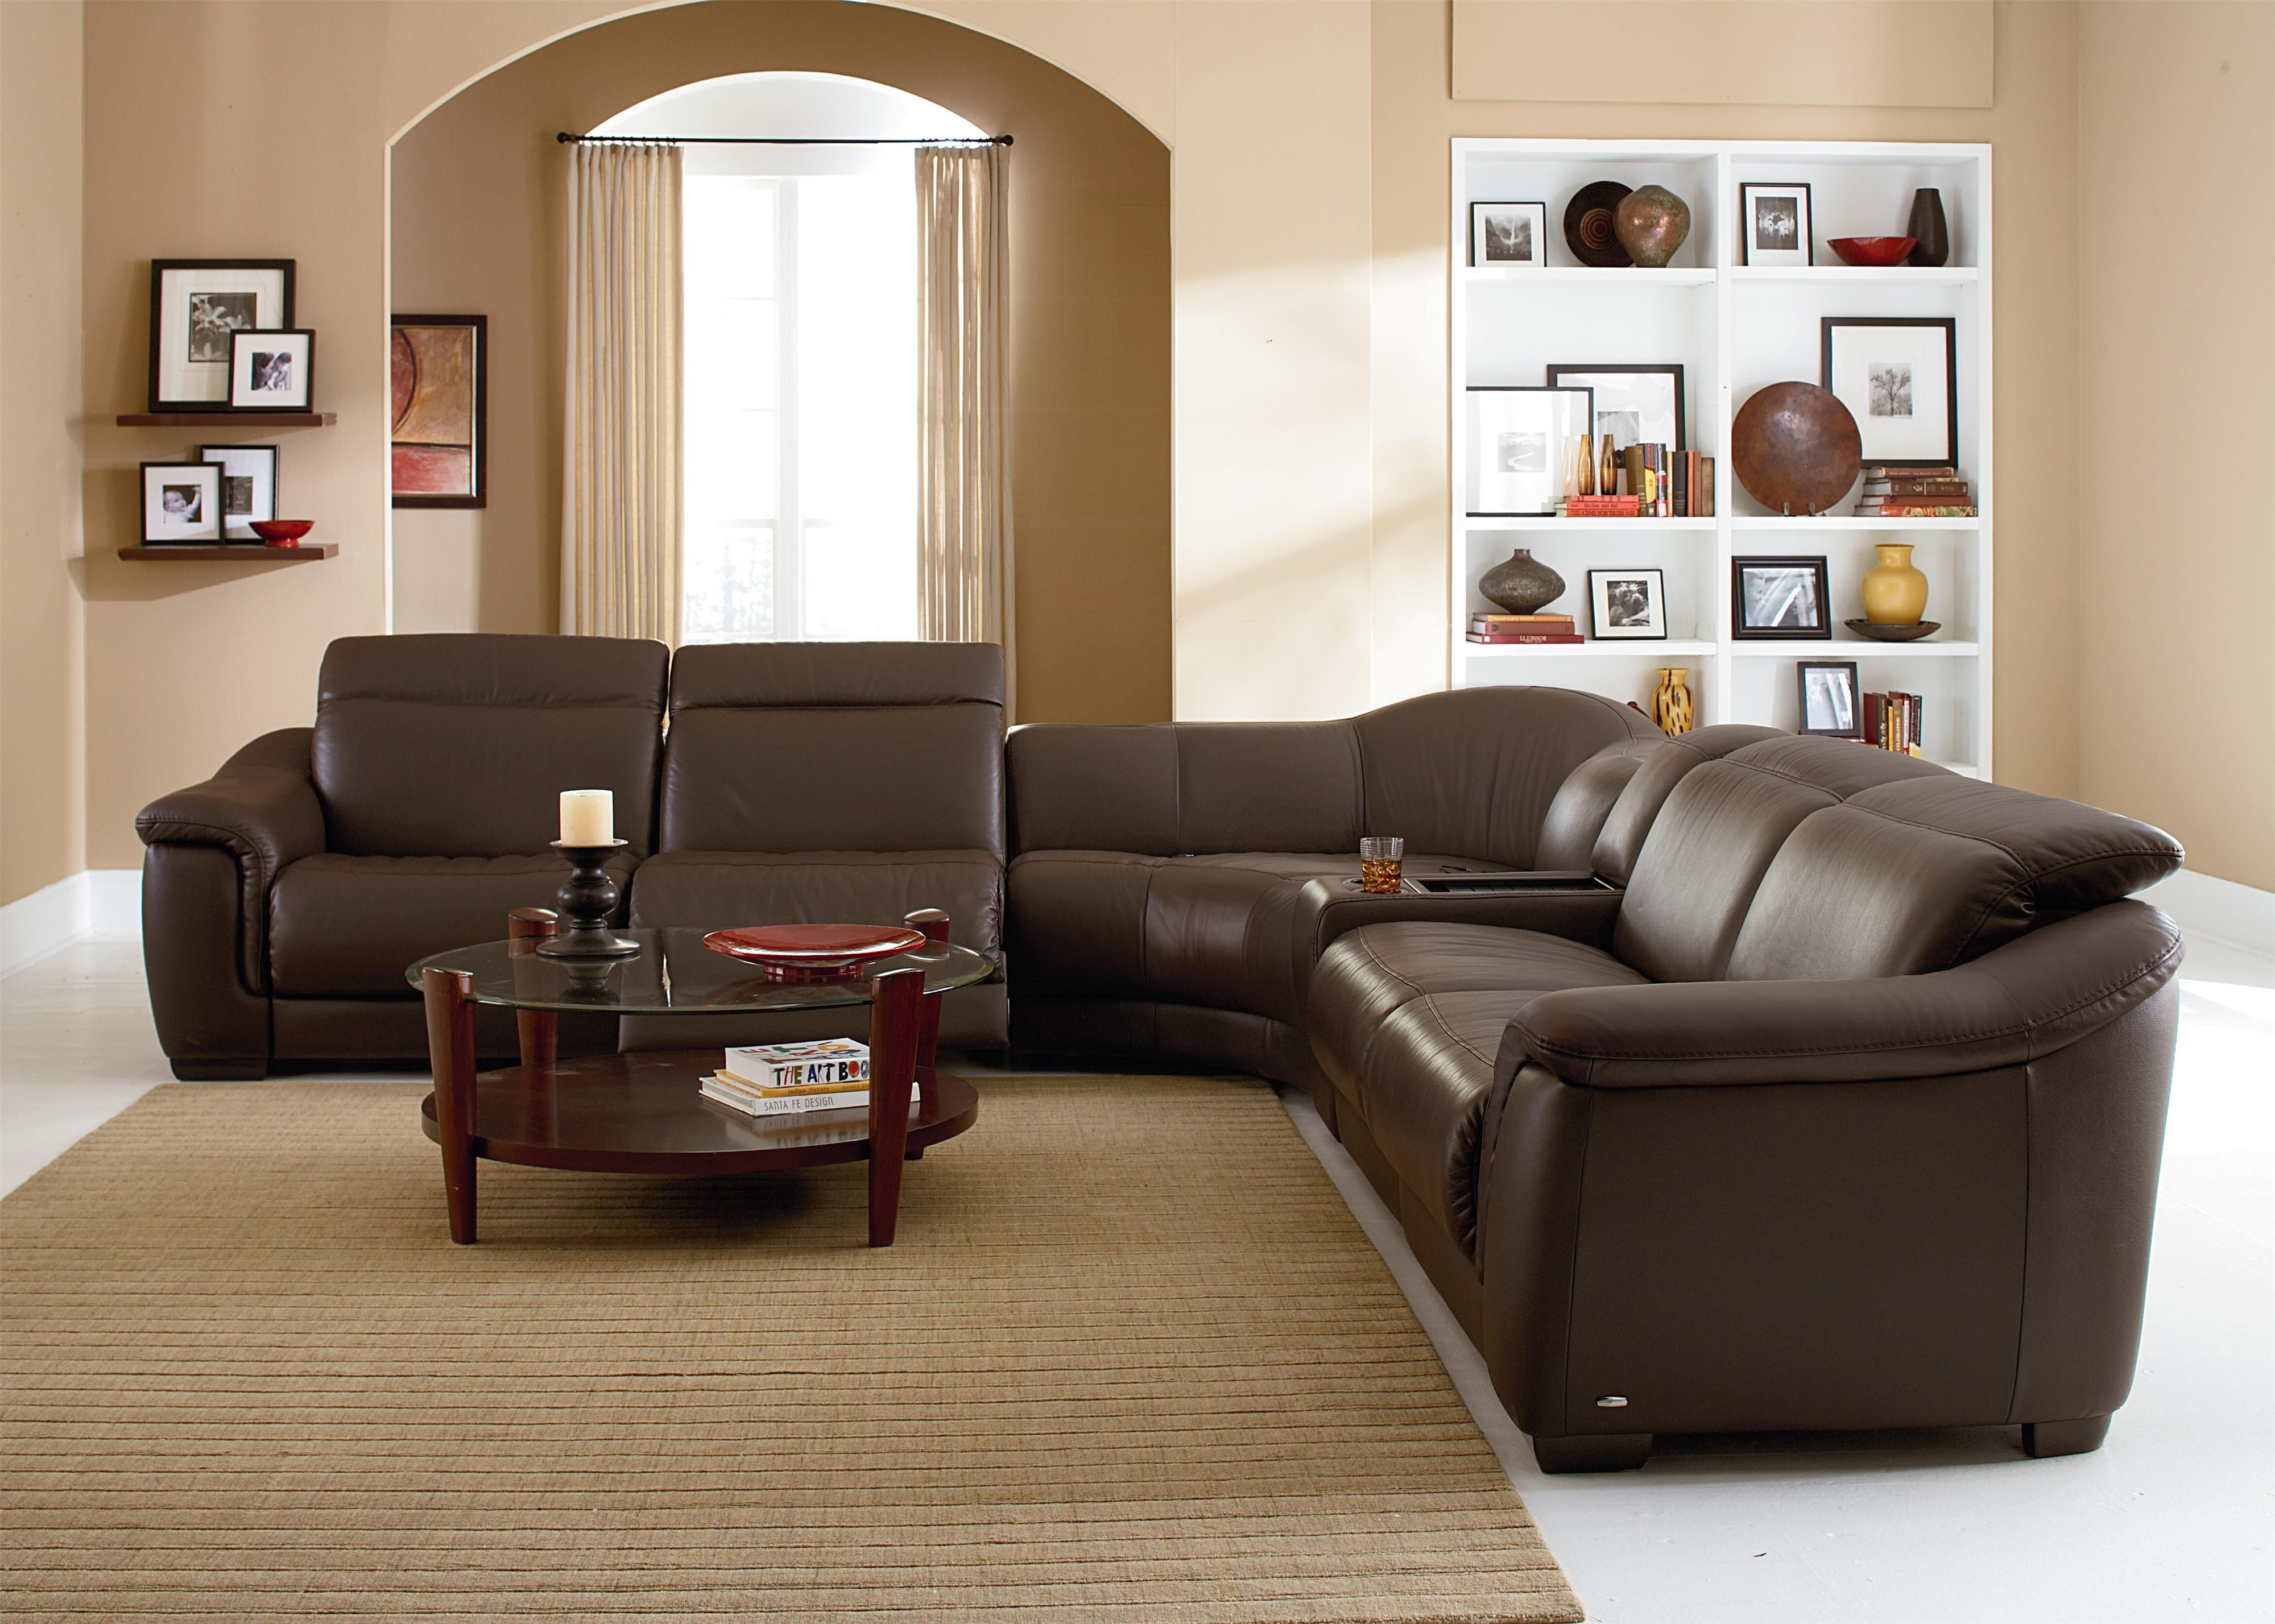 Astonishing B641 Contemporary Leather Reclining Sectional Sofa With Unemploymentrelief Wooden Chair Designs For Living Room Unemploymentrelieforg